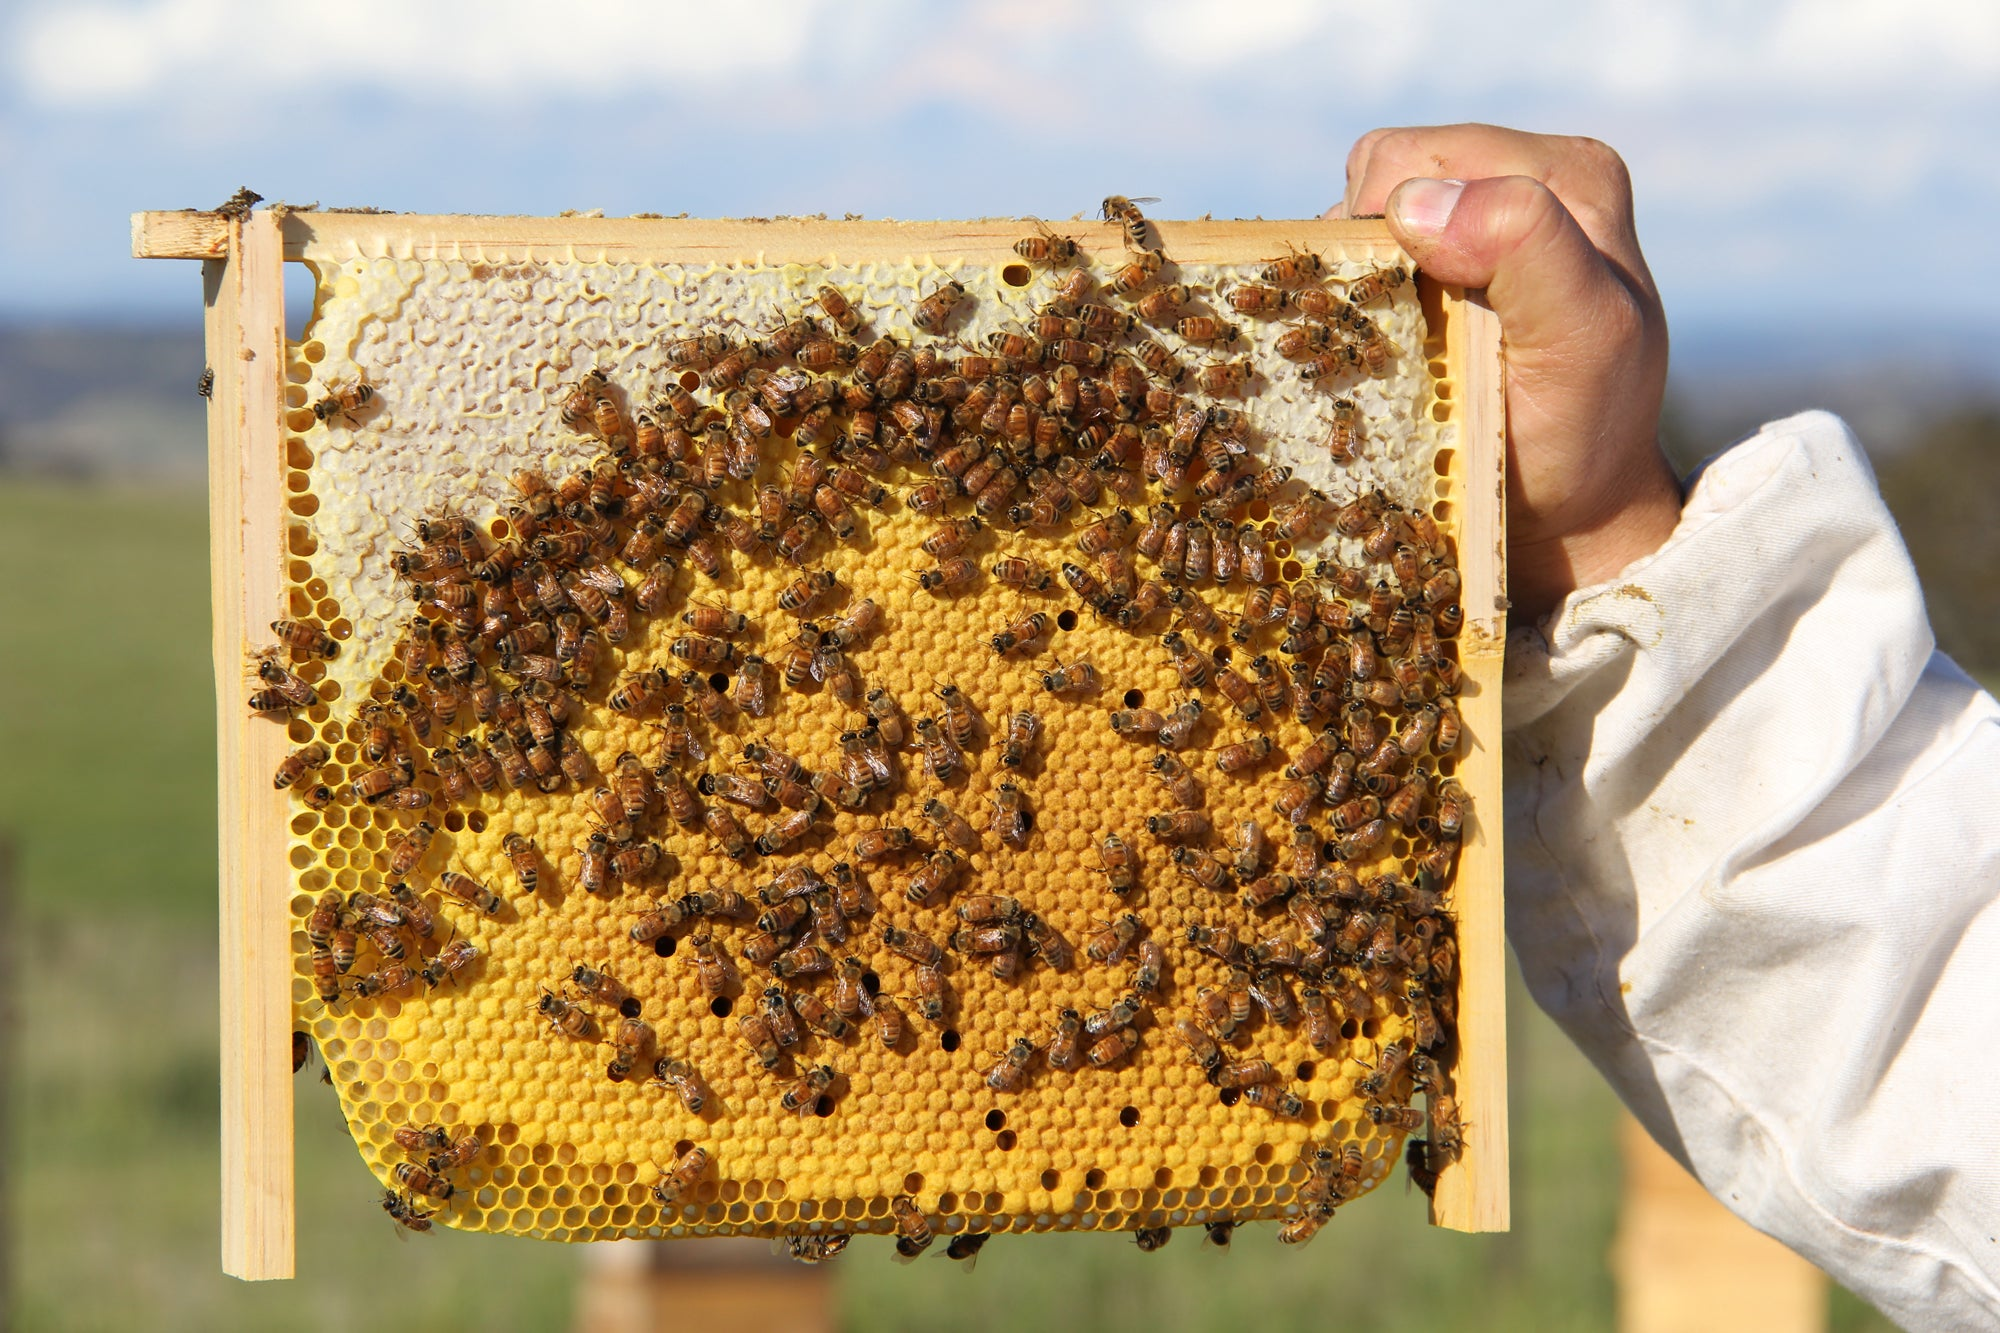 Malfroy's Gold Brood Comb